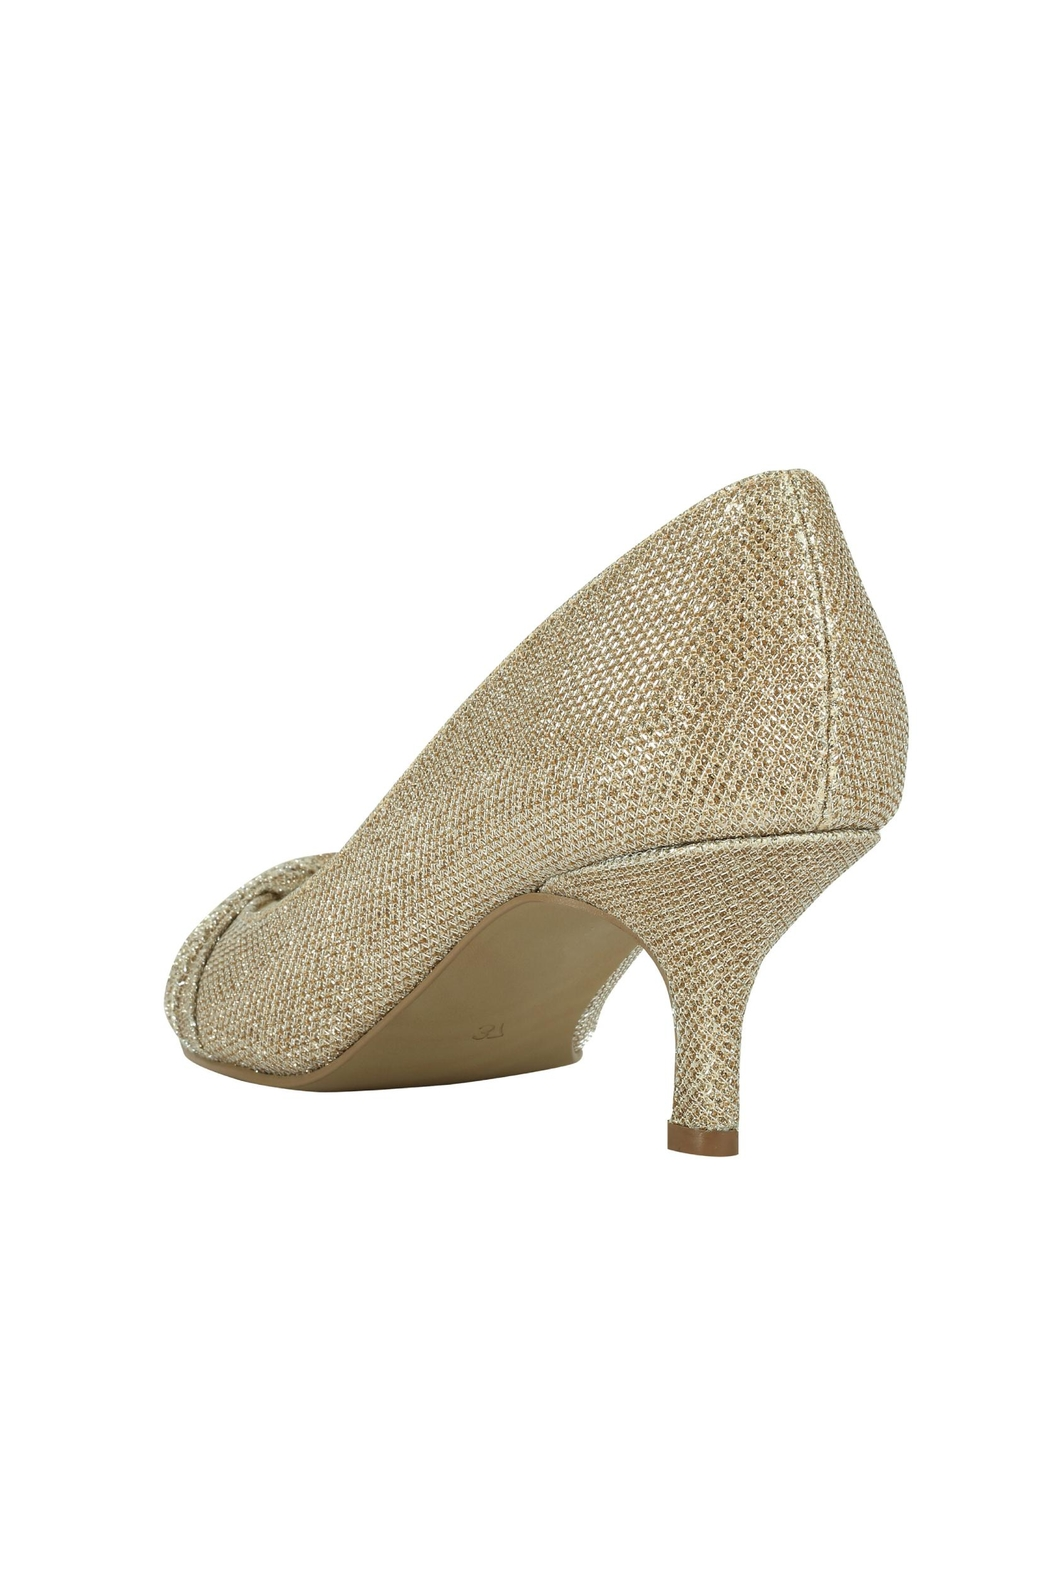 pink paradox London Romantic Champagne Glitter Heel - Side Cropped Image